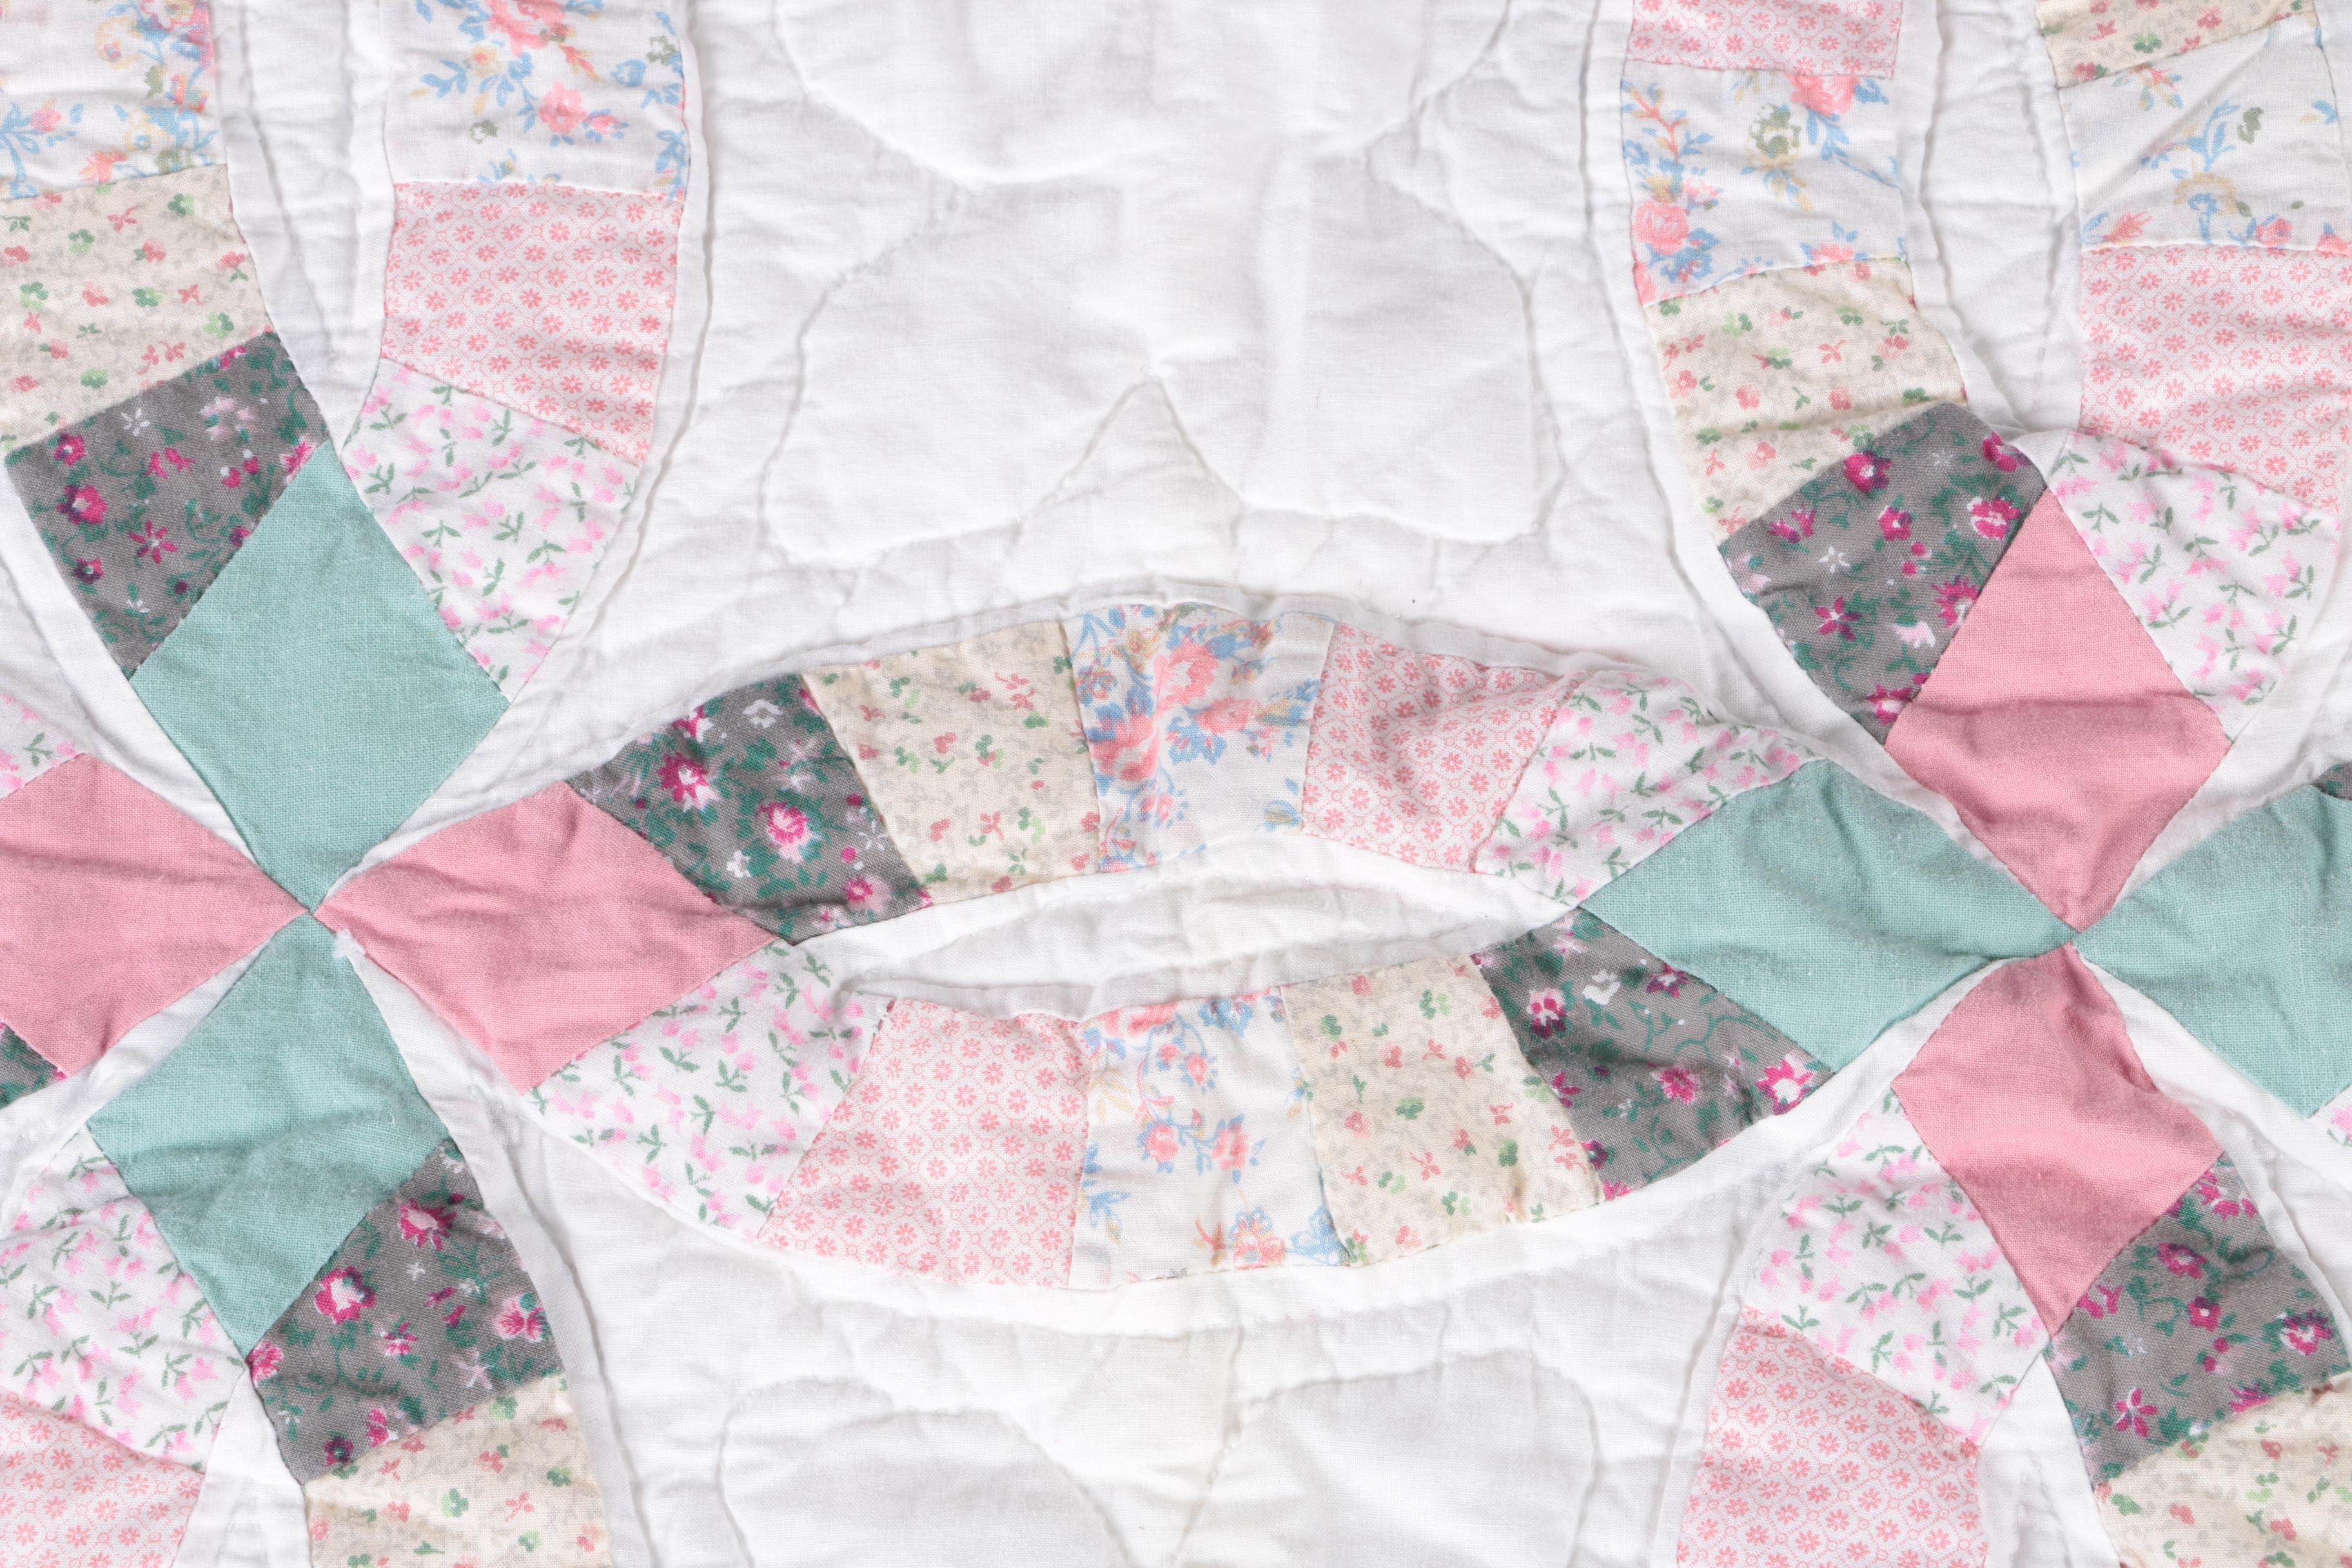 HD wallpapers binding a double wedding ring quilt designcloveghdml